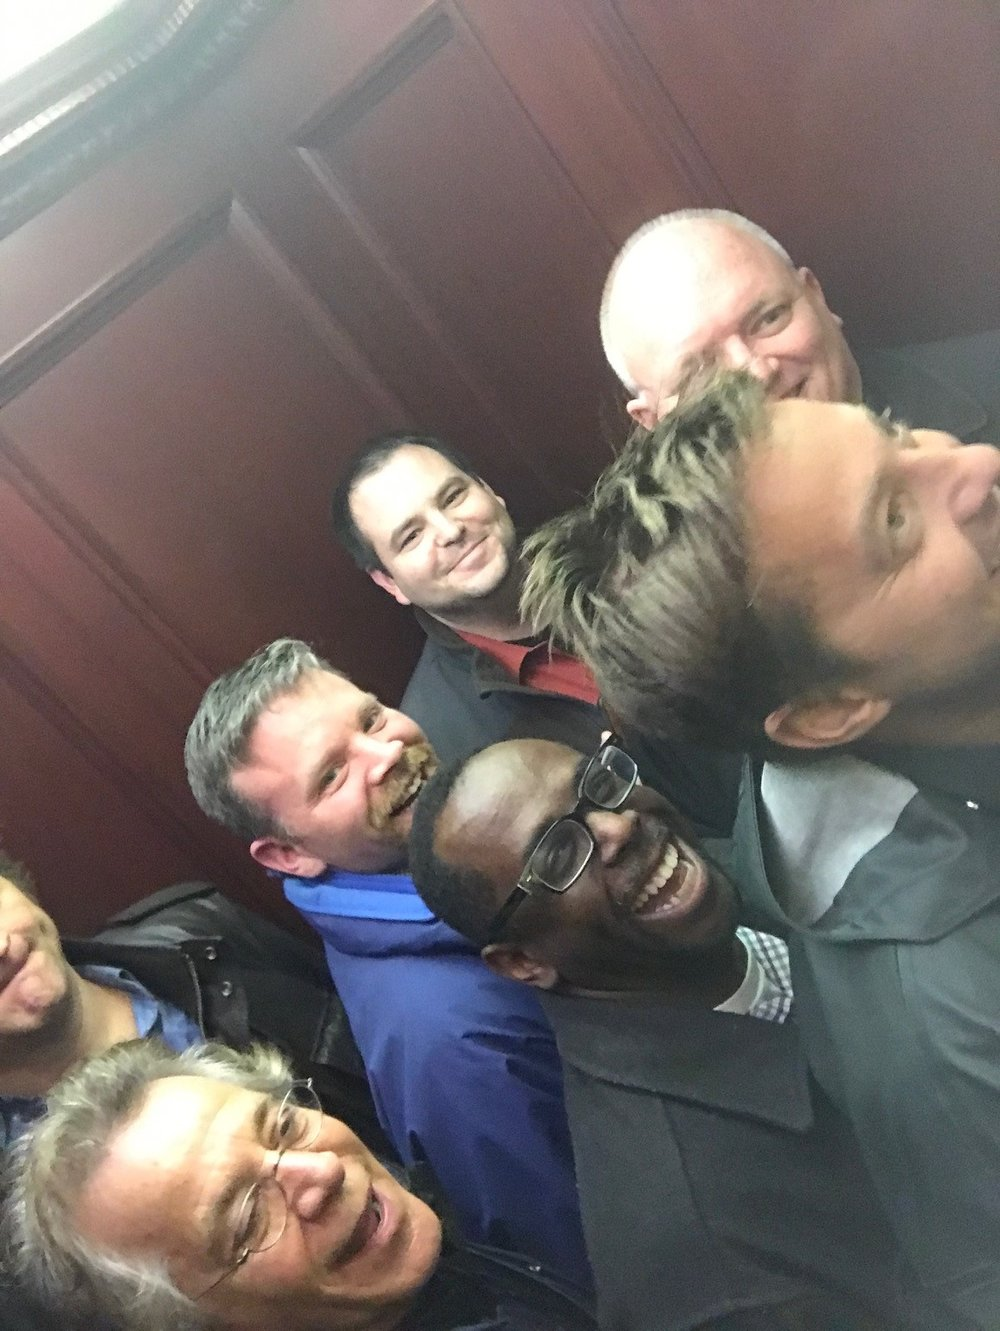 Yes, we all fit in the elevator.